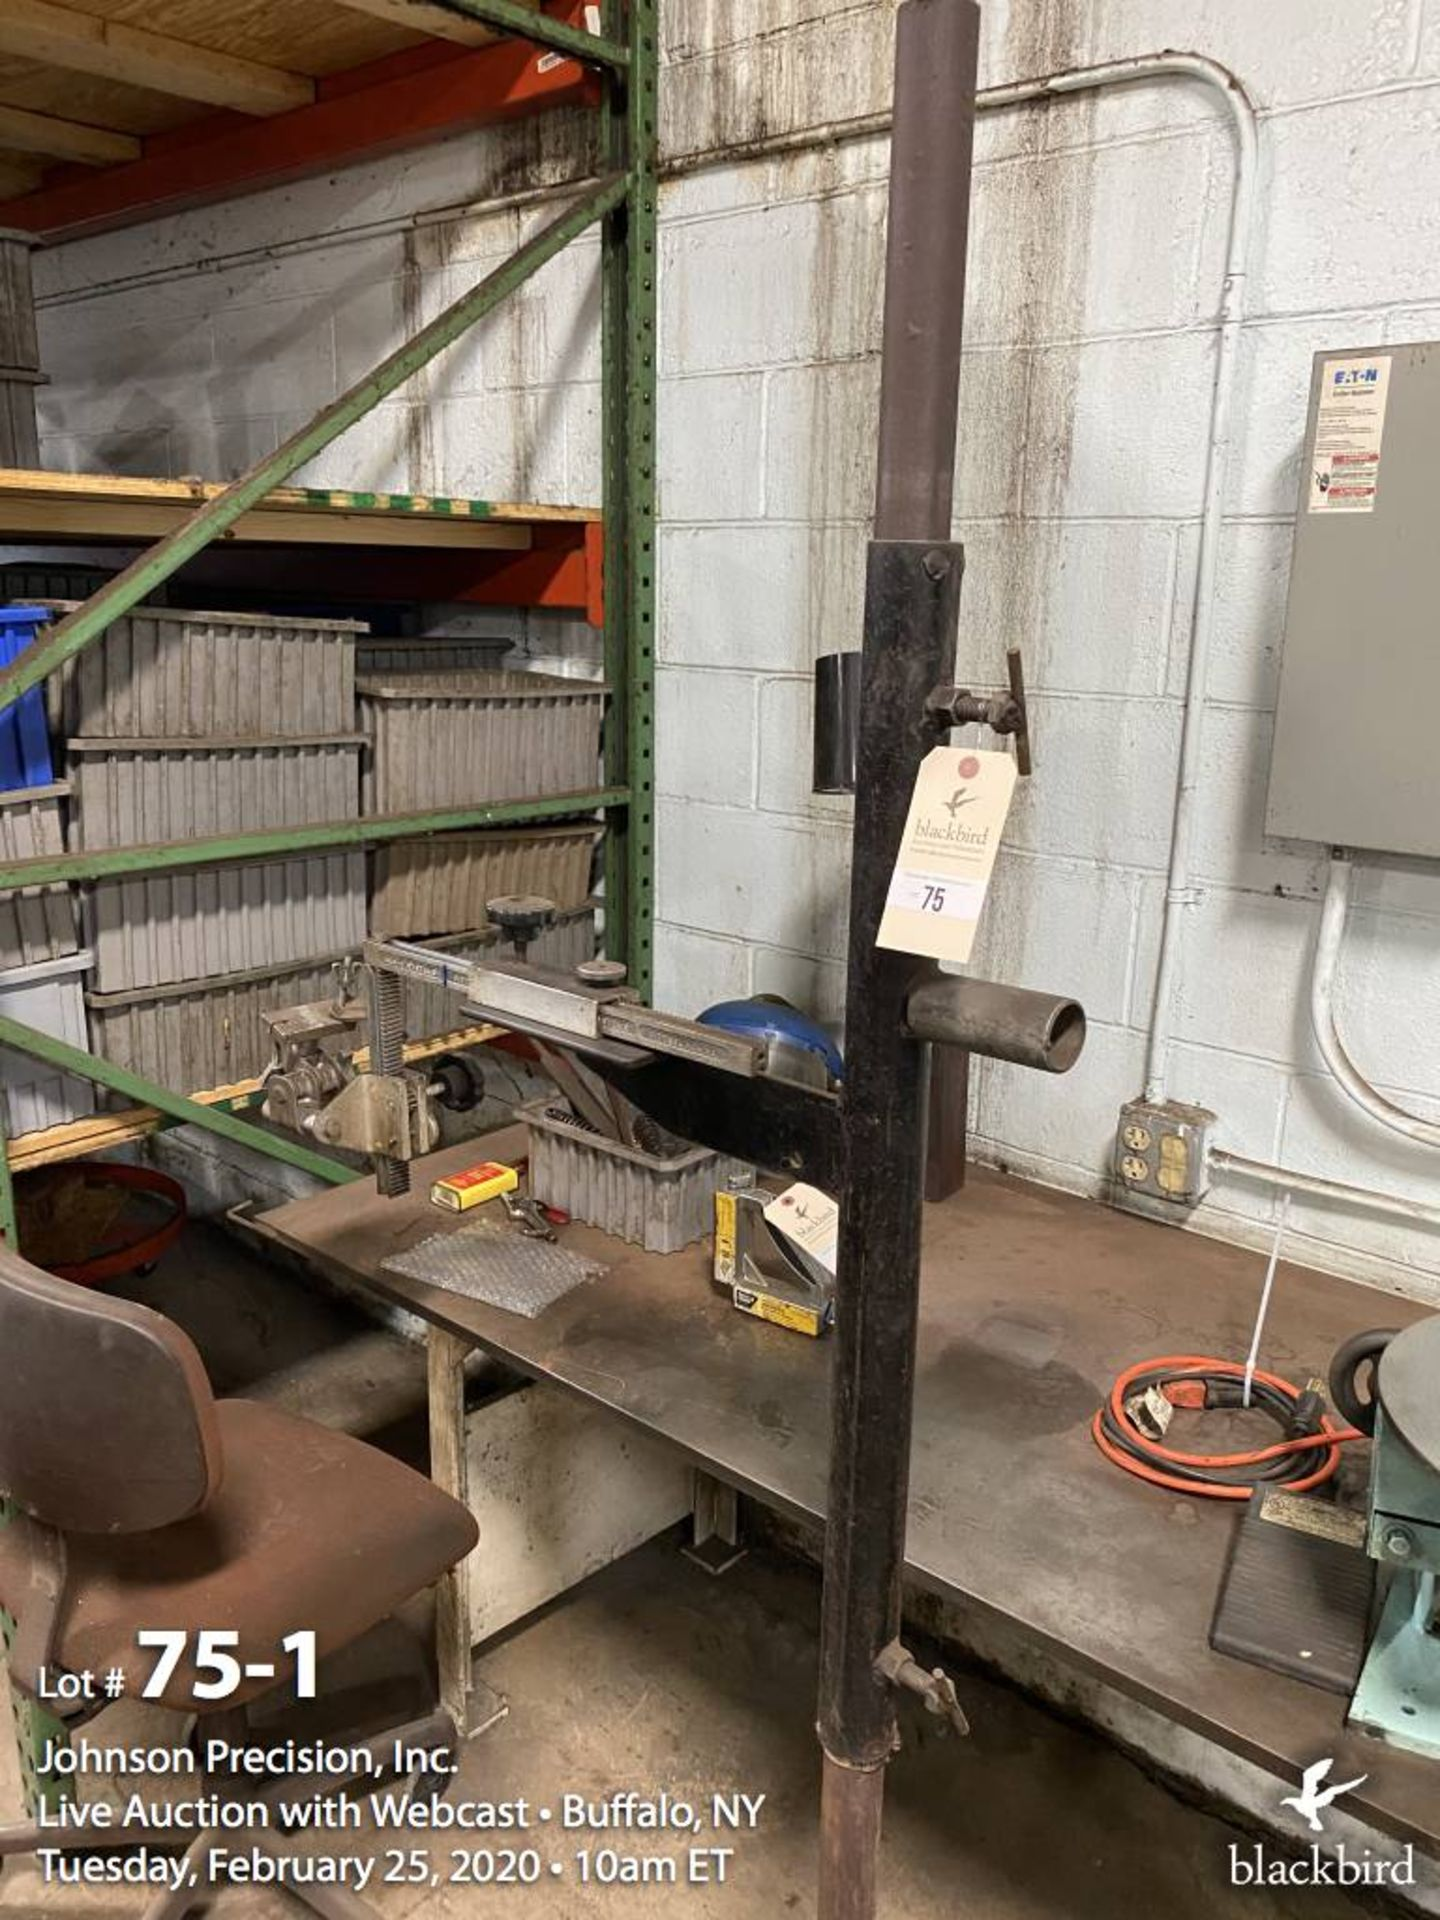 Lot 75 - Bug-O Systems welding gun positioner and holder